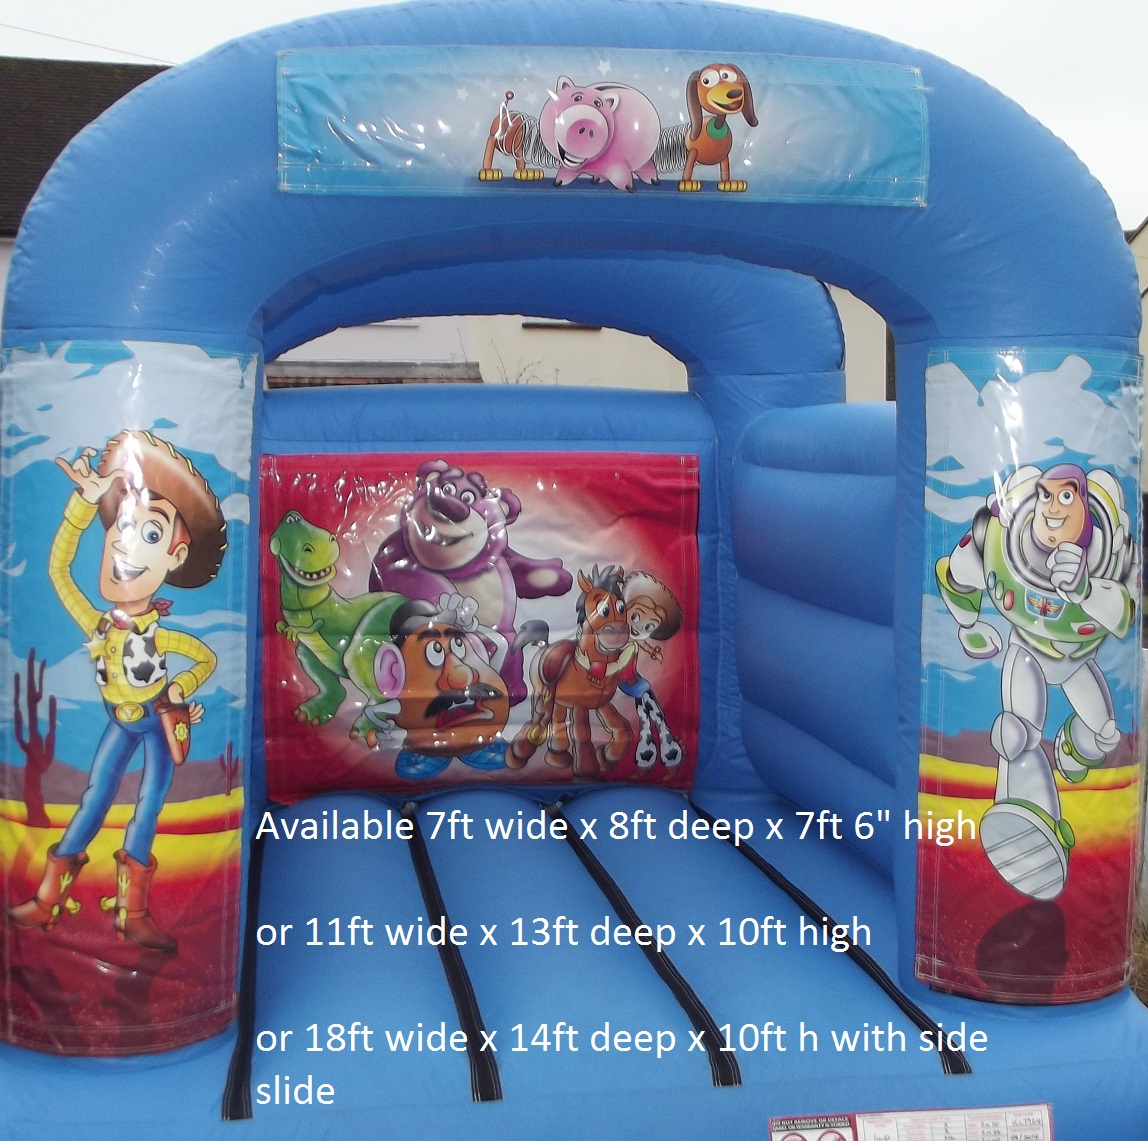 Basil's Bouncy Castles and Mascot Hire